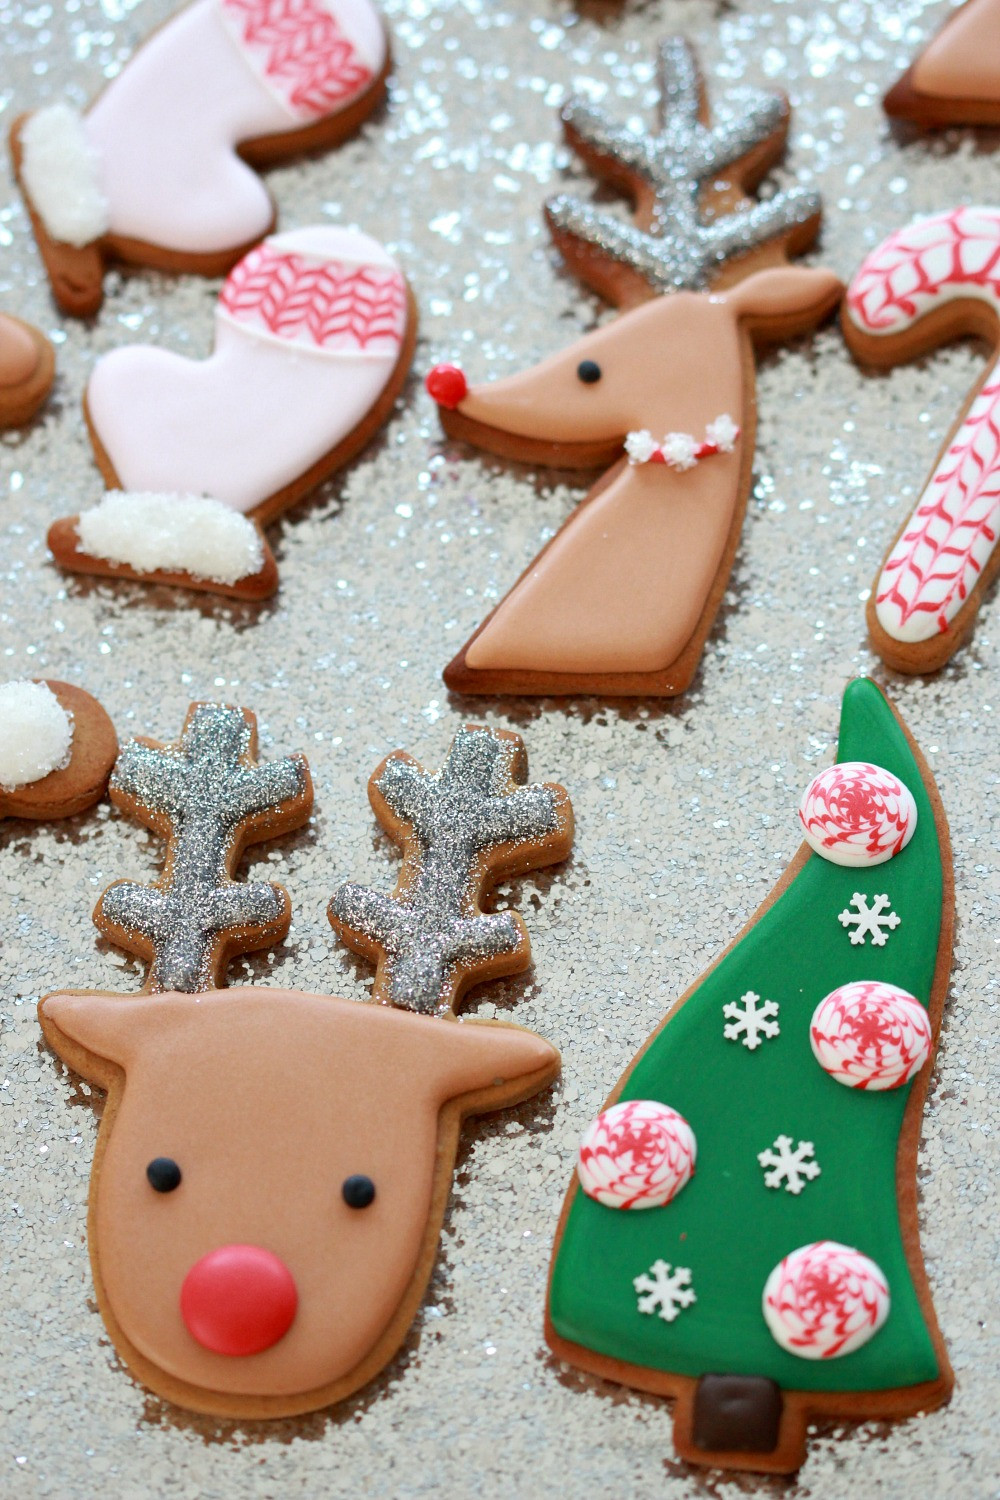 Pictures Of Christmas Cookies Decorated  Video How to Decorate Christmas Cookies Simple Designs